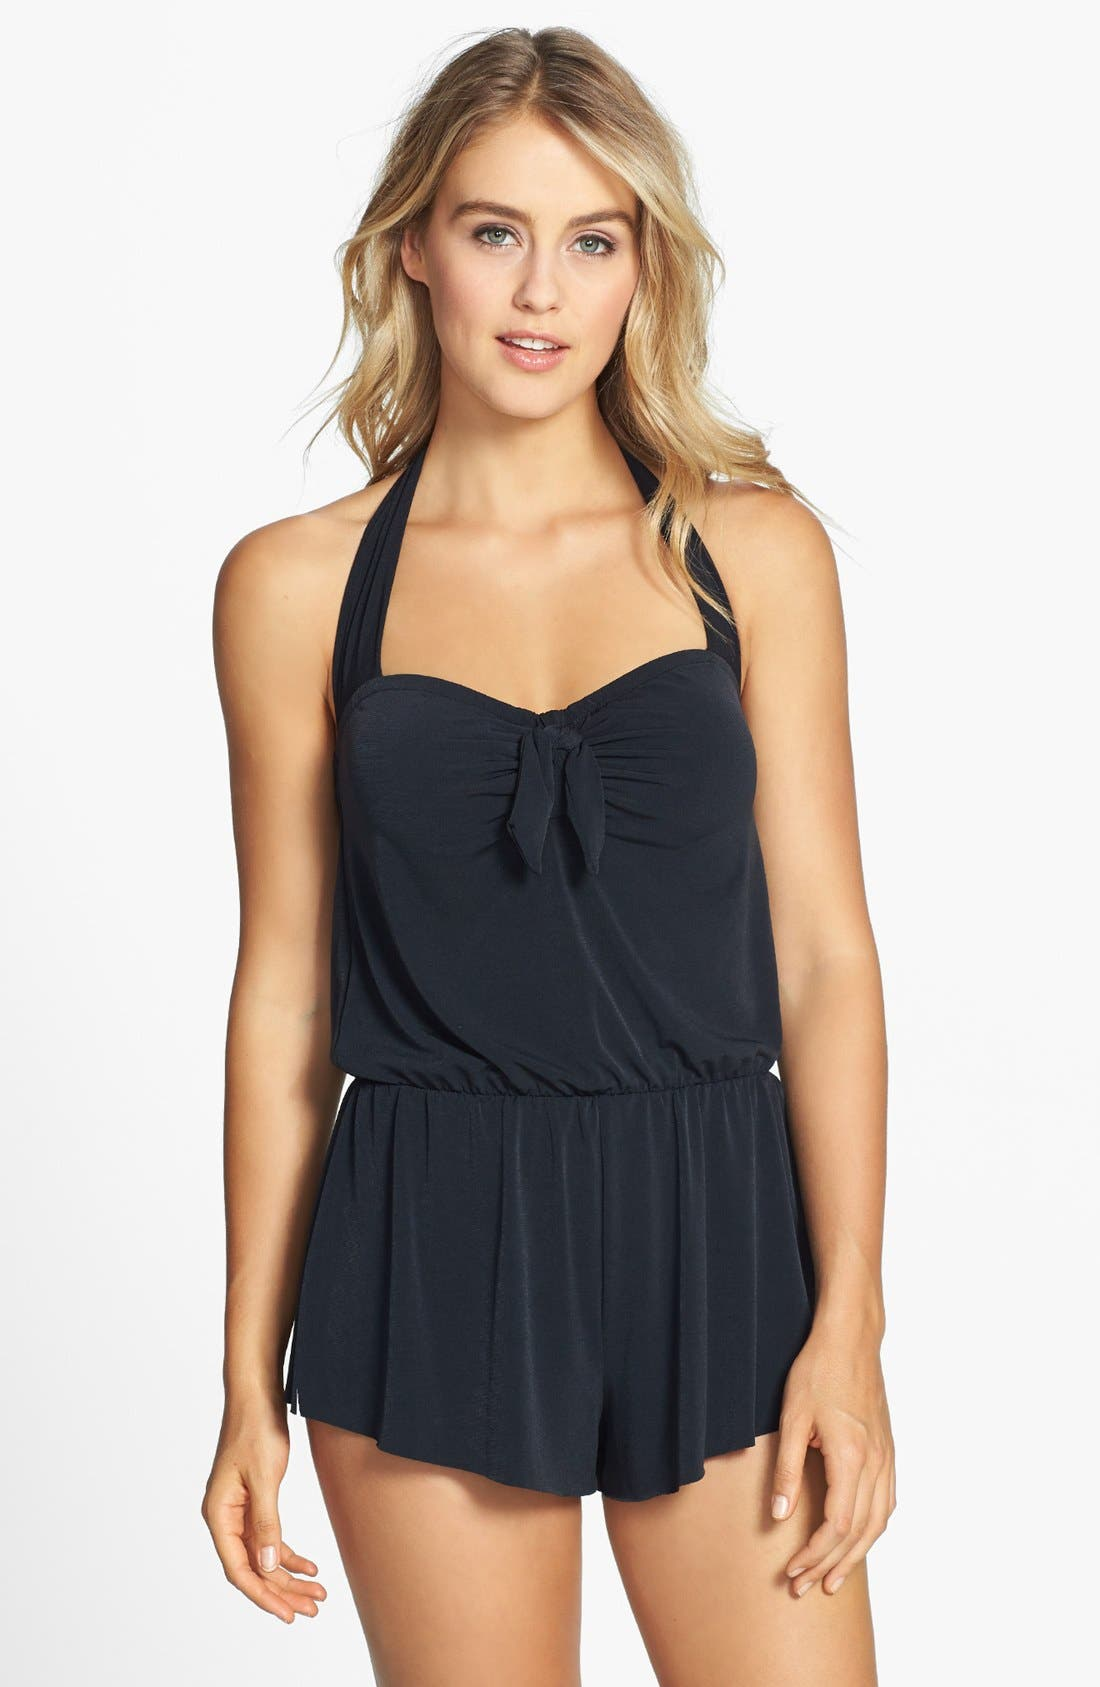 Alternate Image 1 Selected - Magic Suit by Miraclesuit® 'Romy' One-Piece Romper Swimsuit